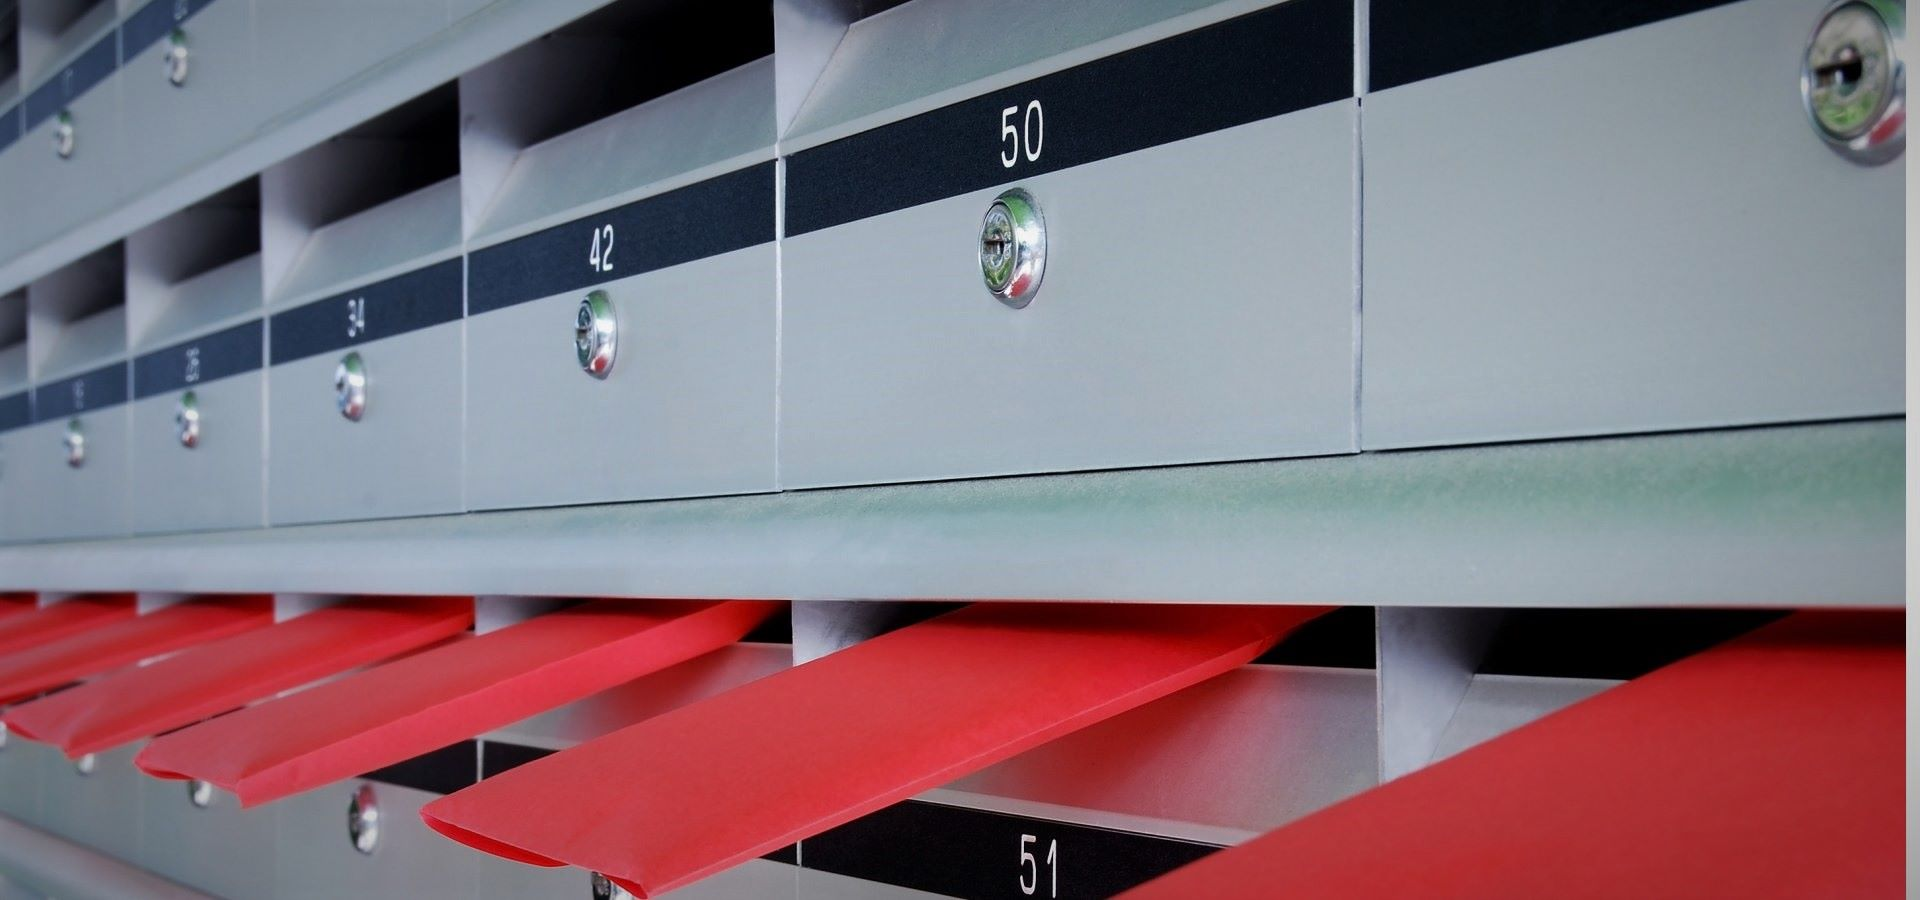 Letterboxes with envelopes